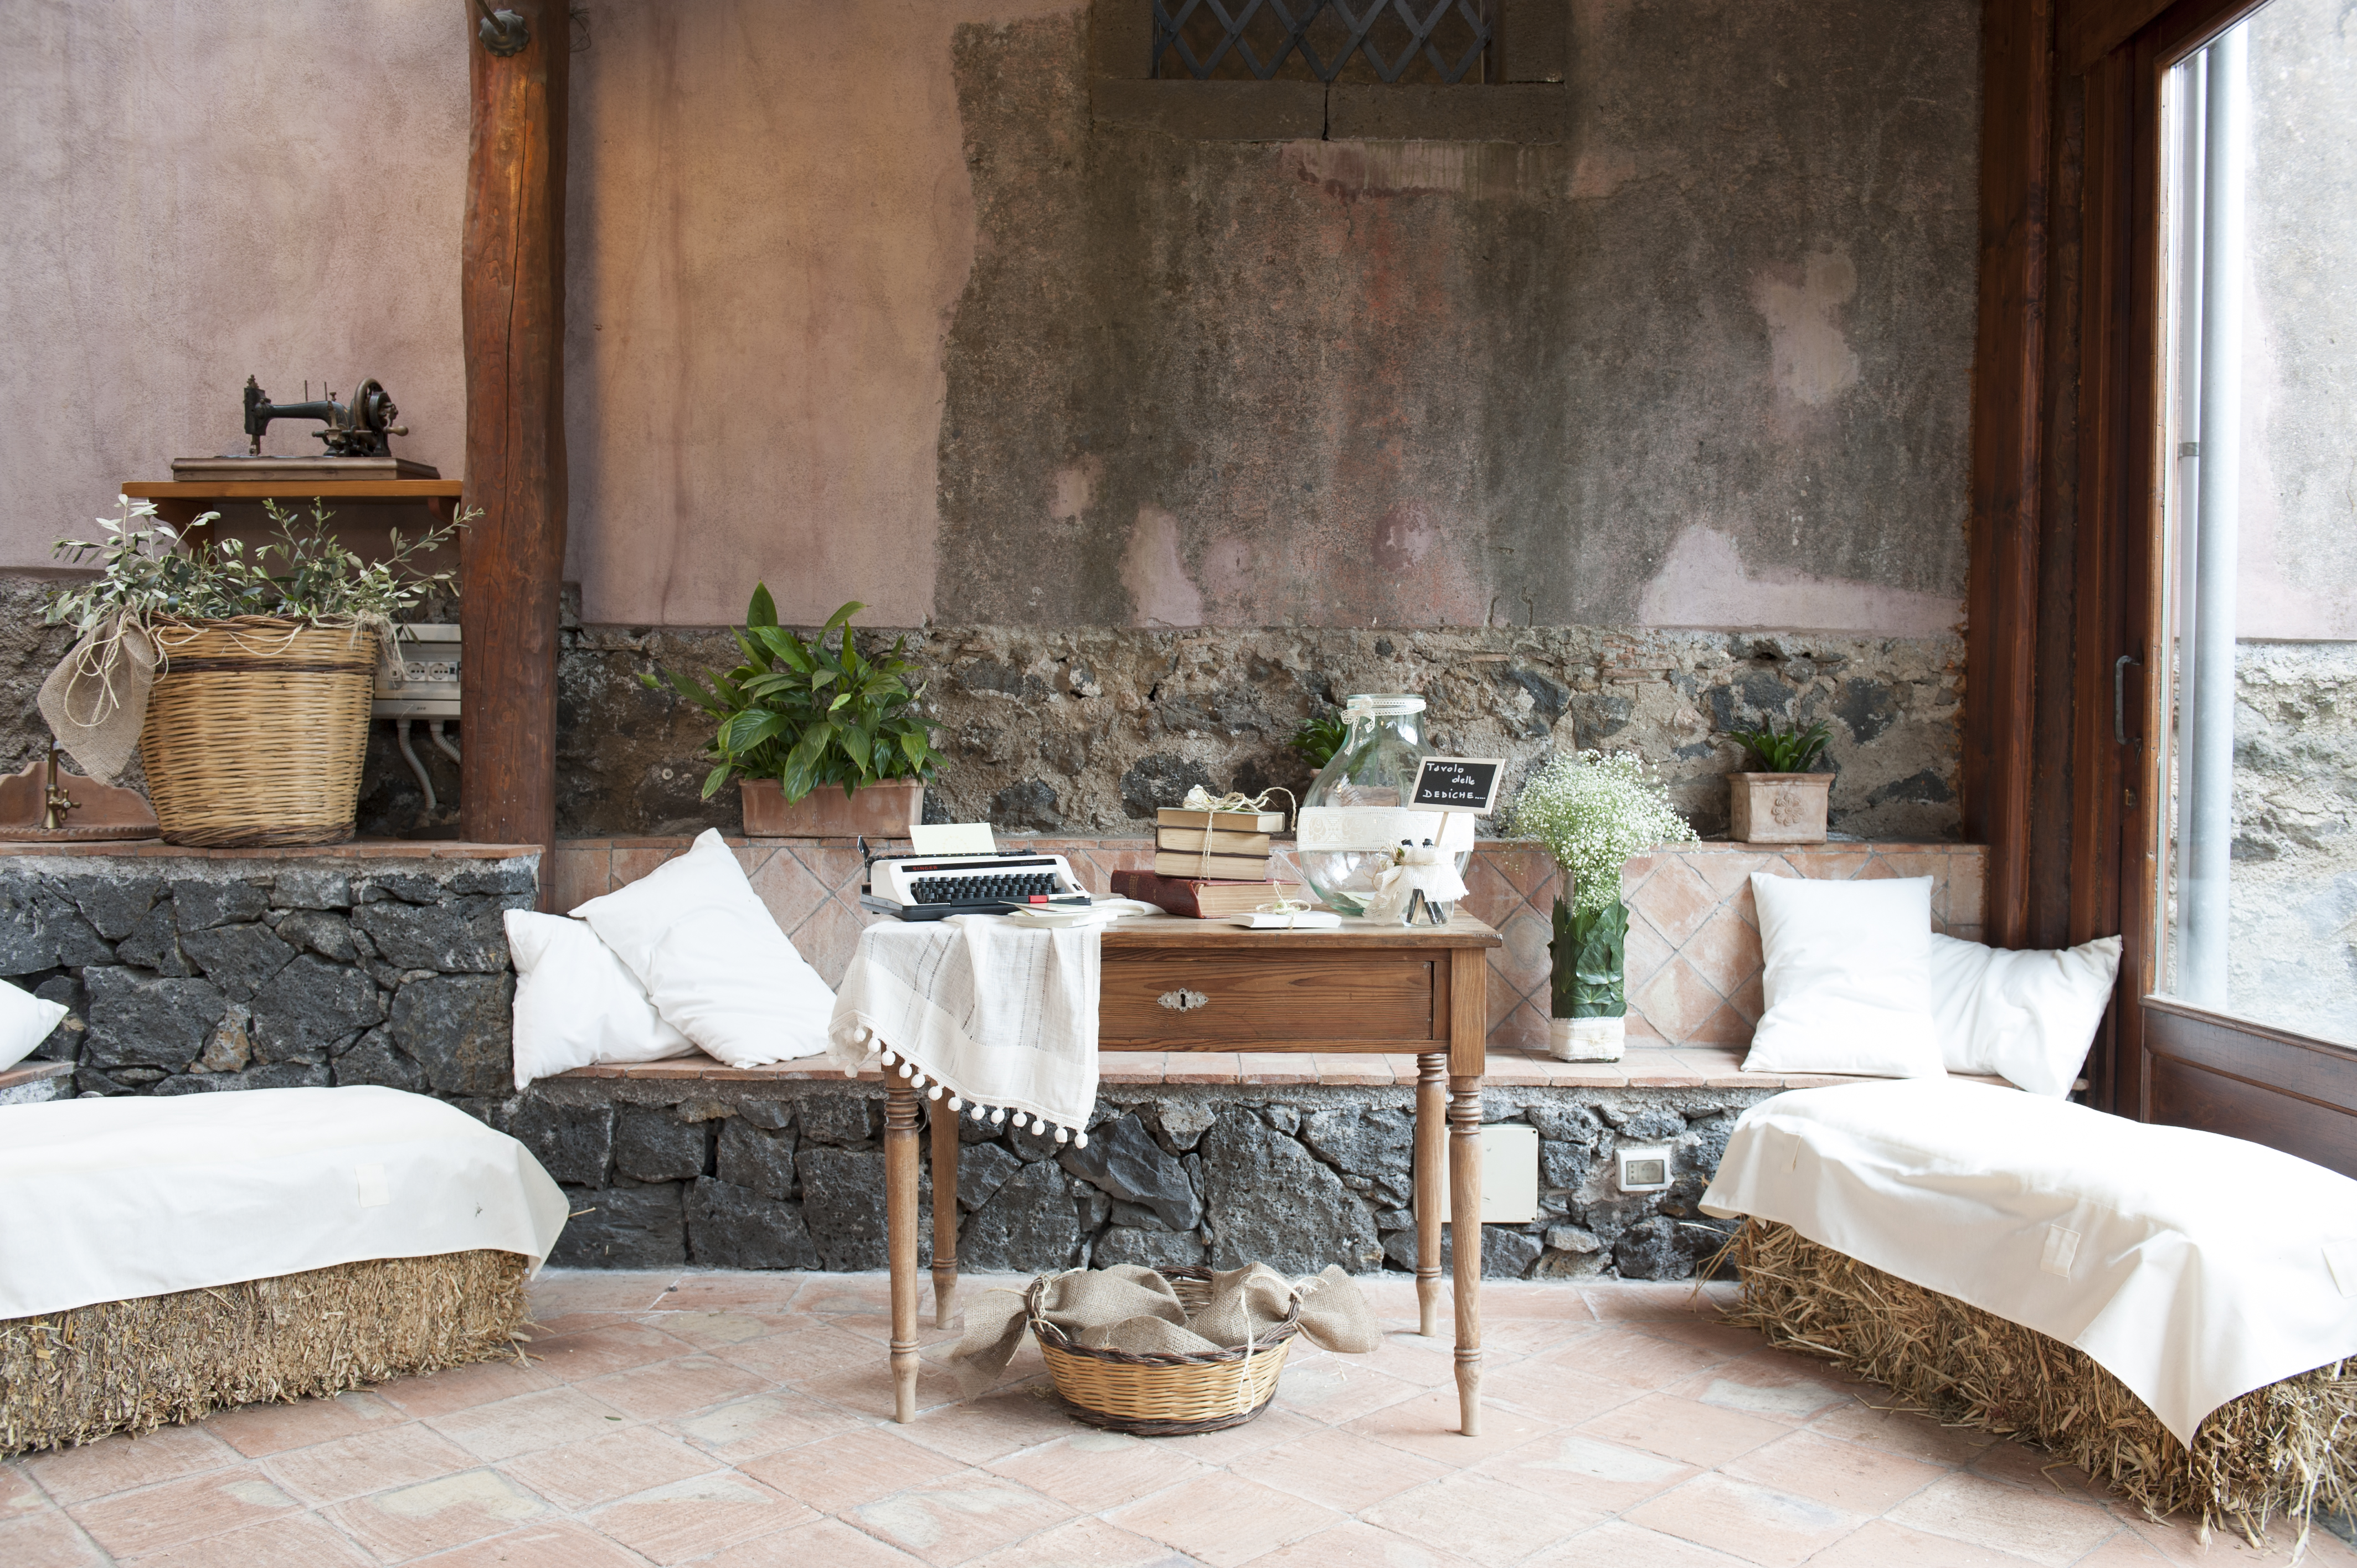 Matrimonio Country Chic Sicilia : Matrimonio country u shabby chic i ricevimenti di case